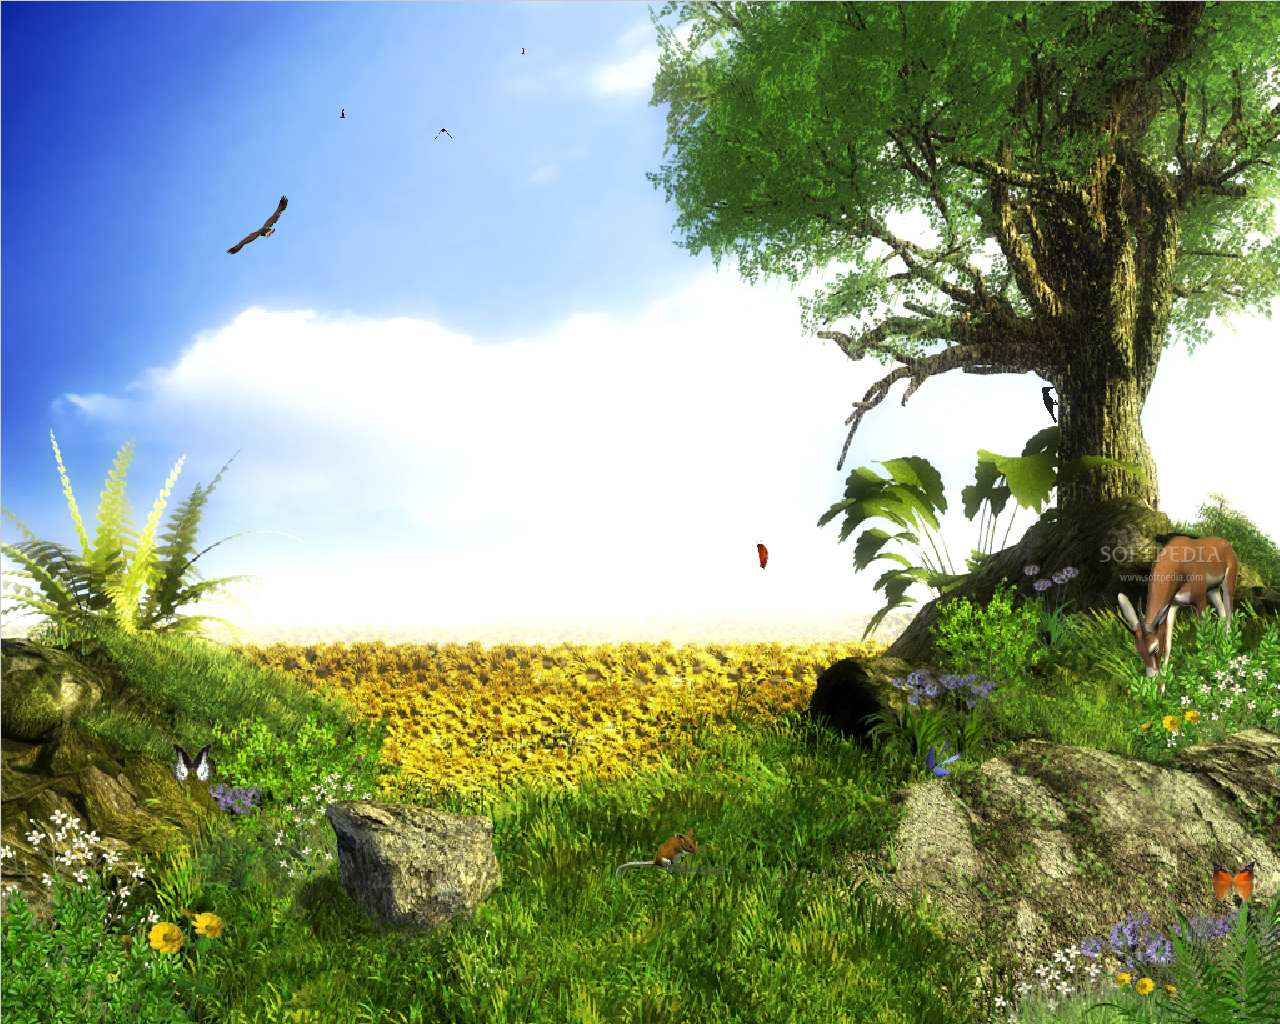 COOL WALLPAPERS: HD Animated Wallpapers